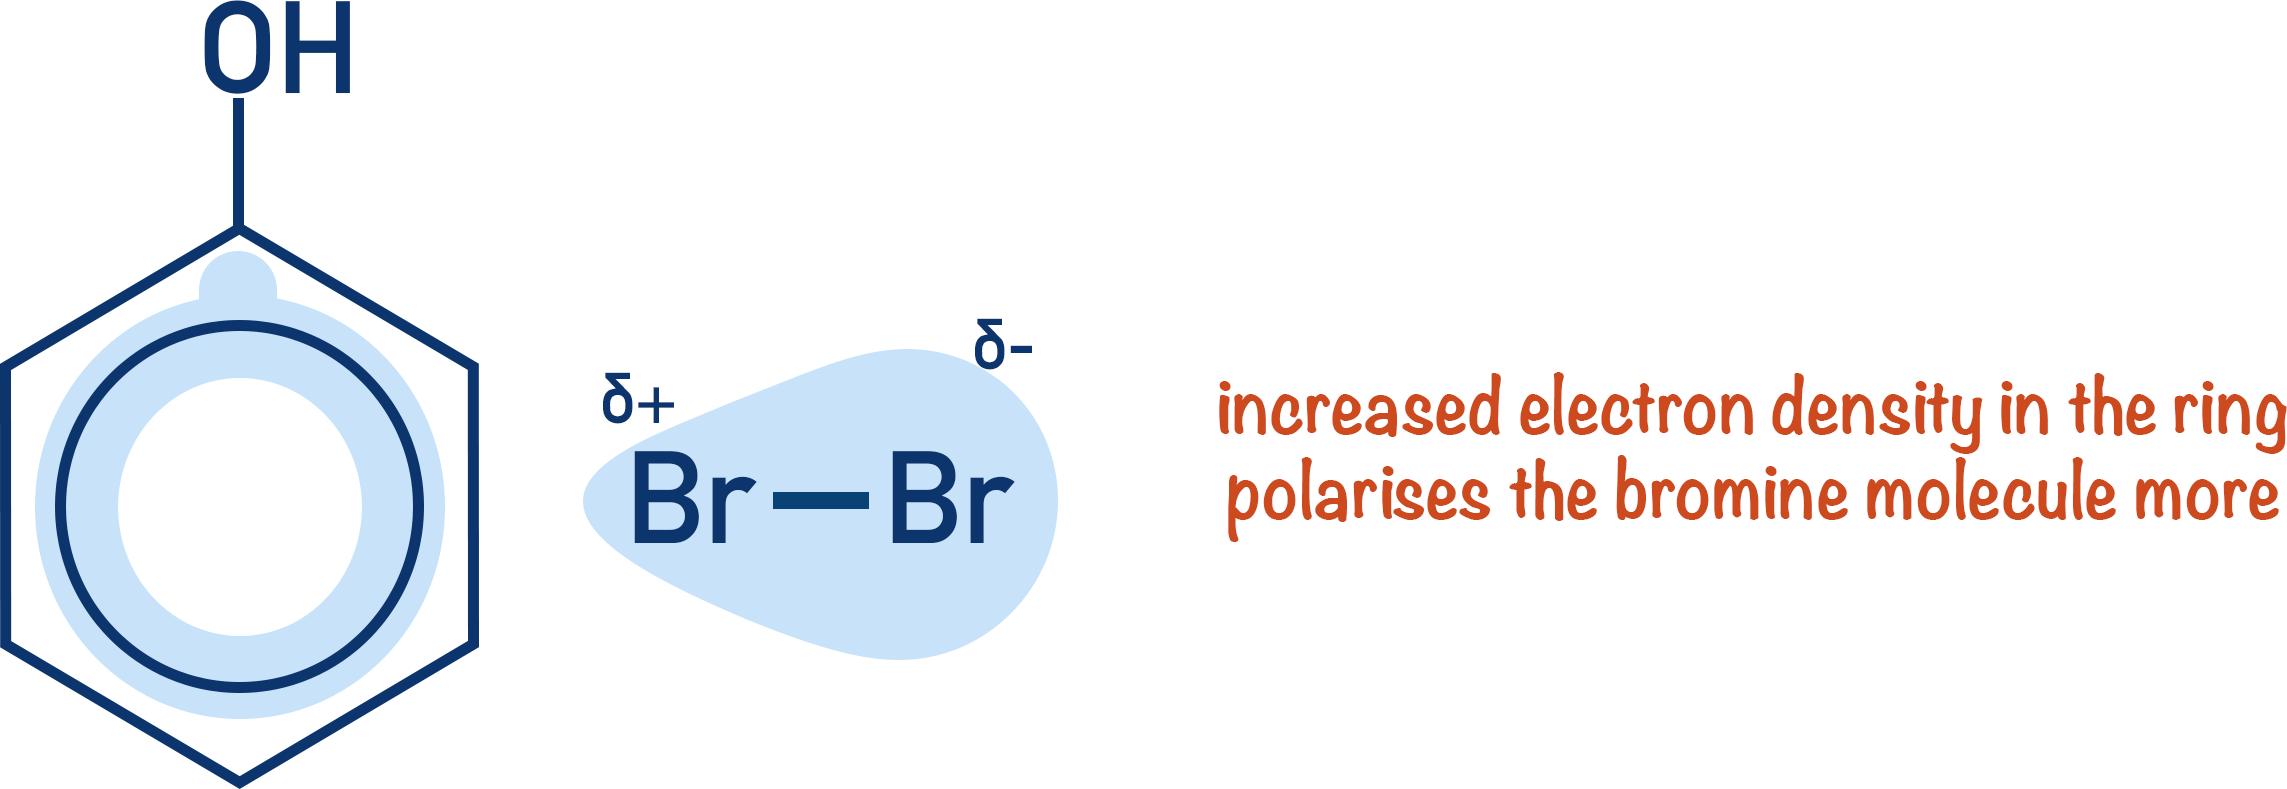 bromination of phenol polarisation bromine a-level chemistry